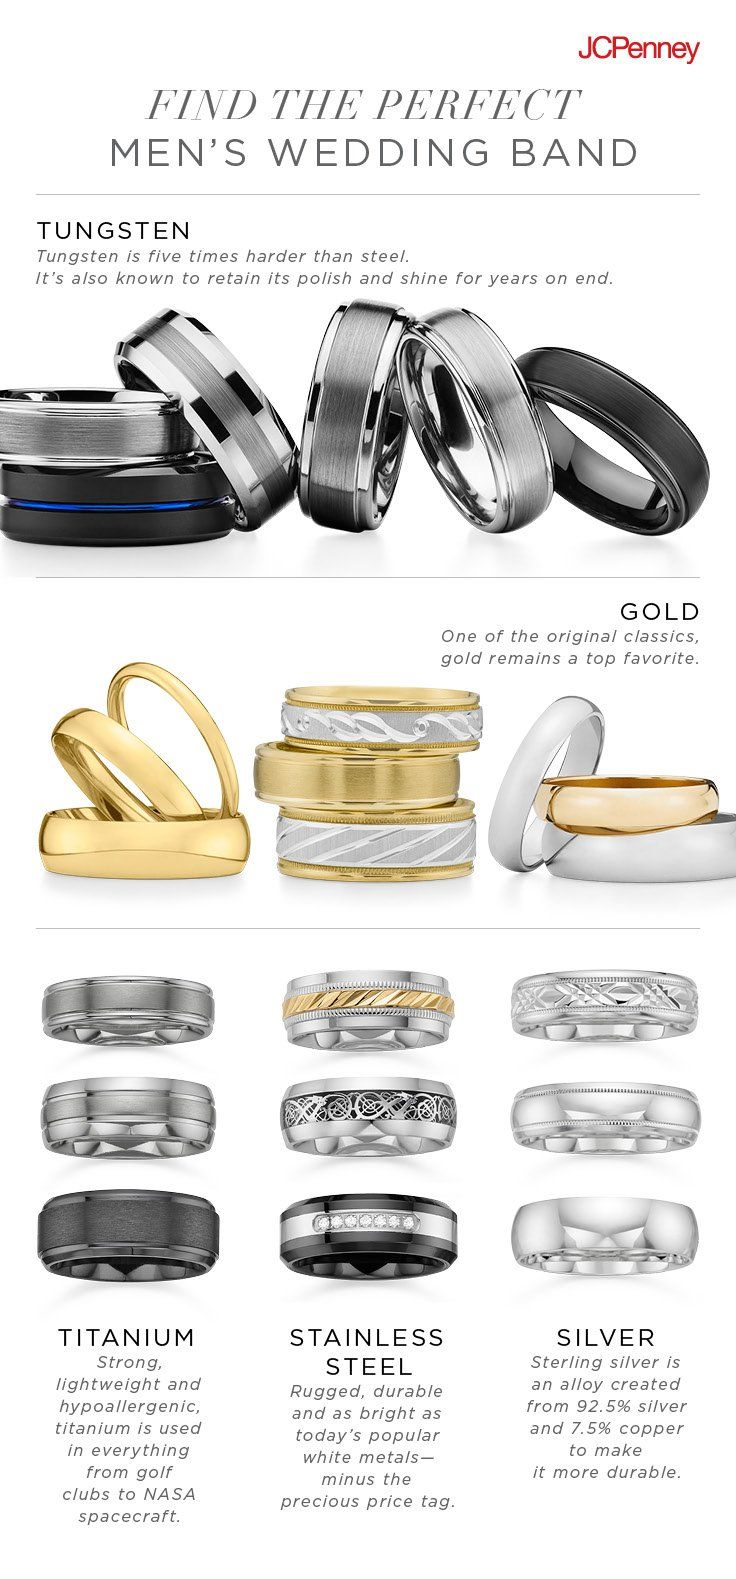 Wedding season is officially here. Get a head start on his forever wedding ring by doing a little homework on the metal that would suit him best. Beyond silver and gold, men's wedding bands have now expanded to other metals, like titanium, stainless steel and tungsten. Take note on what makes each ring unique, and find his perfect match at JCPenney.